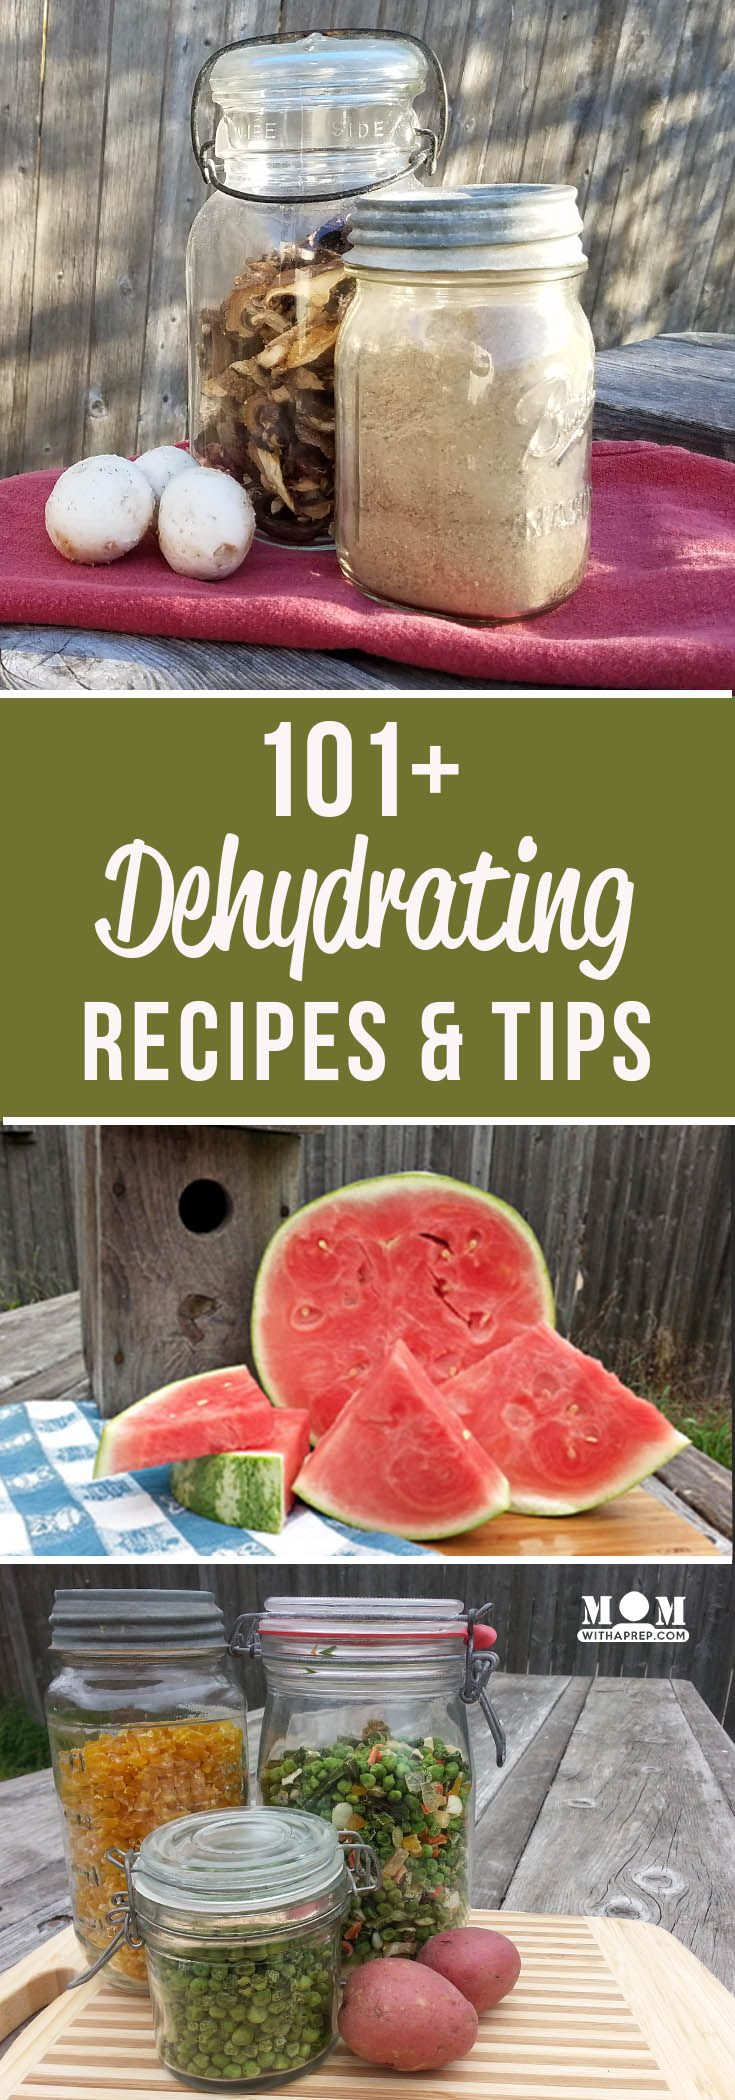 101+ Dehydrating recipes and ideas for your dehydrator - fill your food storage pantry with goodness from your backyard garden or grocery store deals and feed your family with emergency food storage.